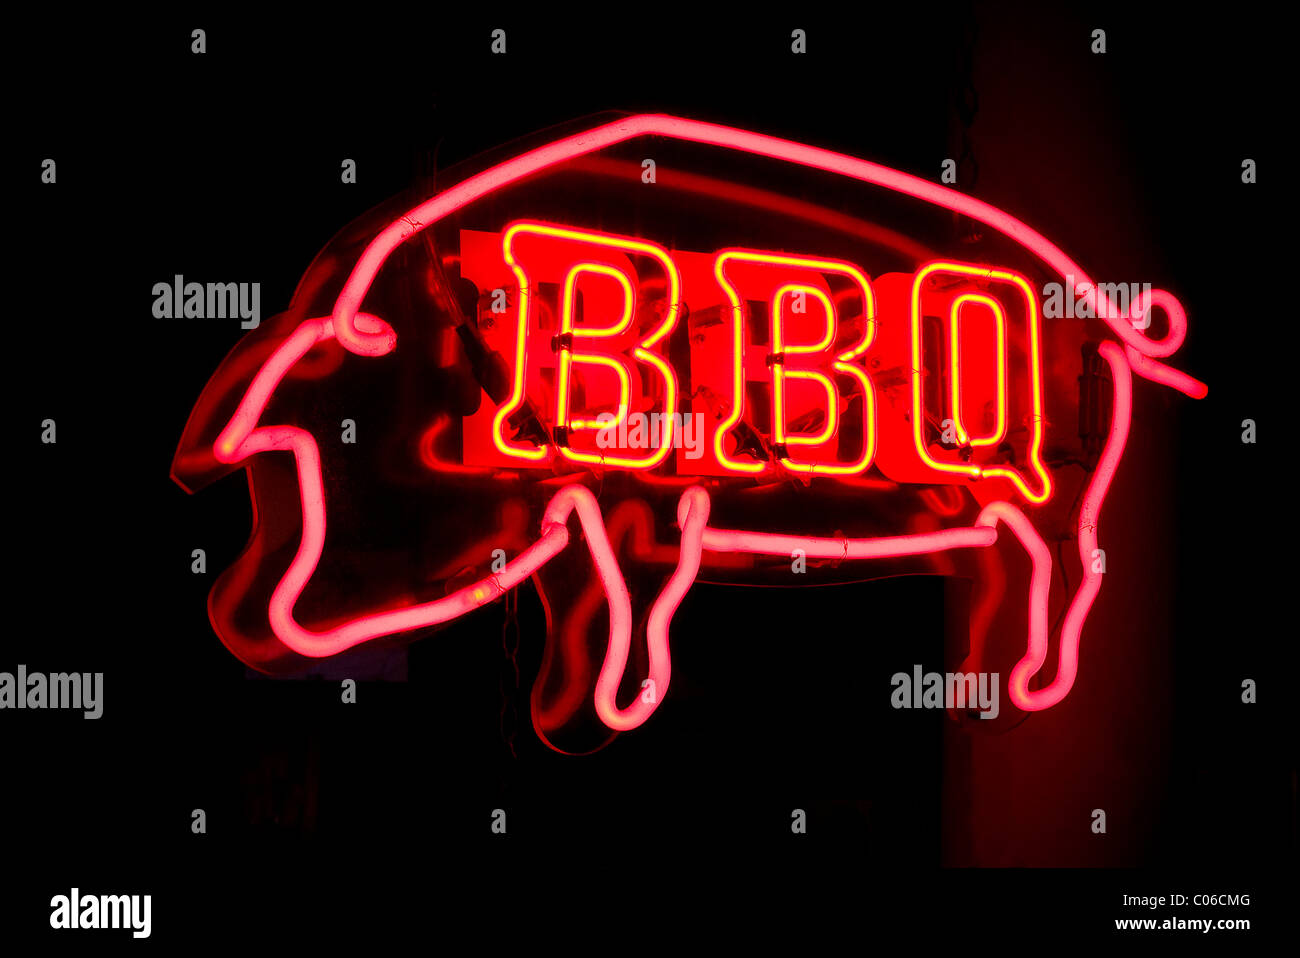 BBQ restaurant neon sign - Stock Image